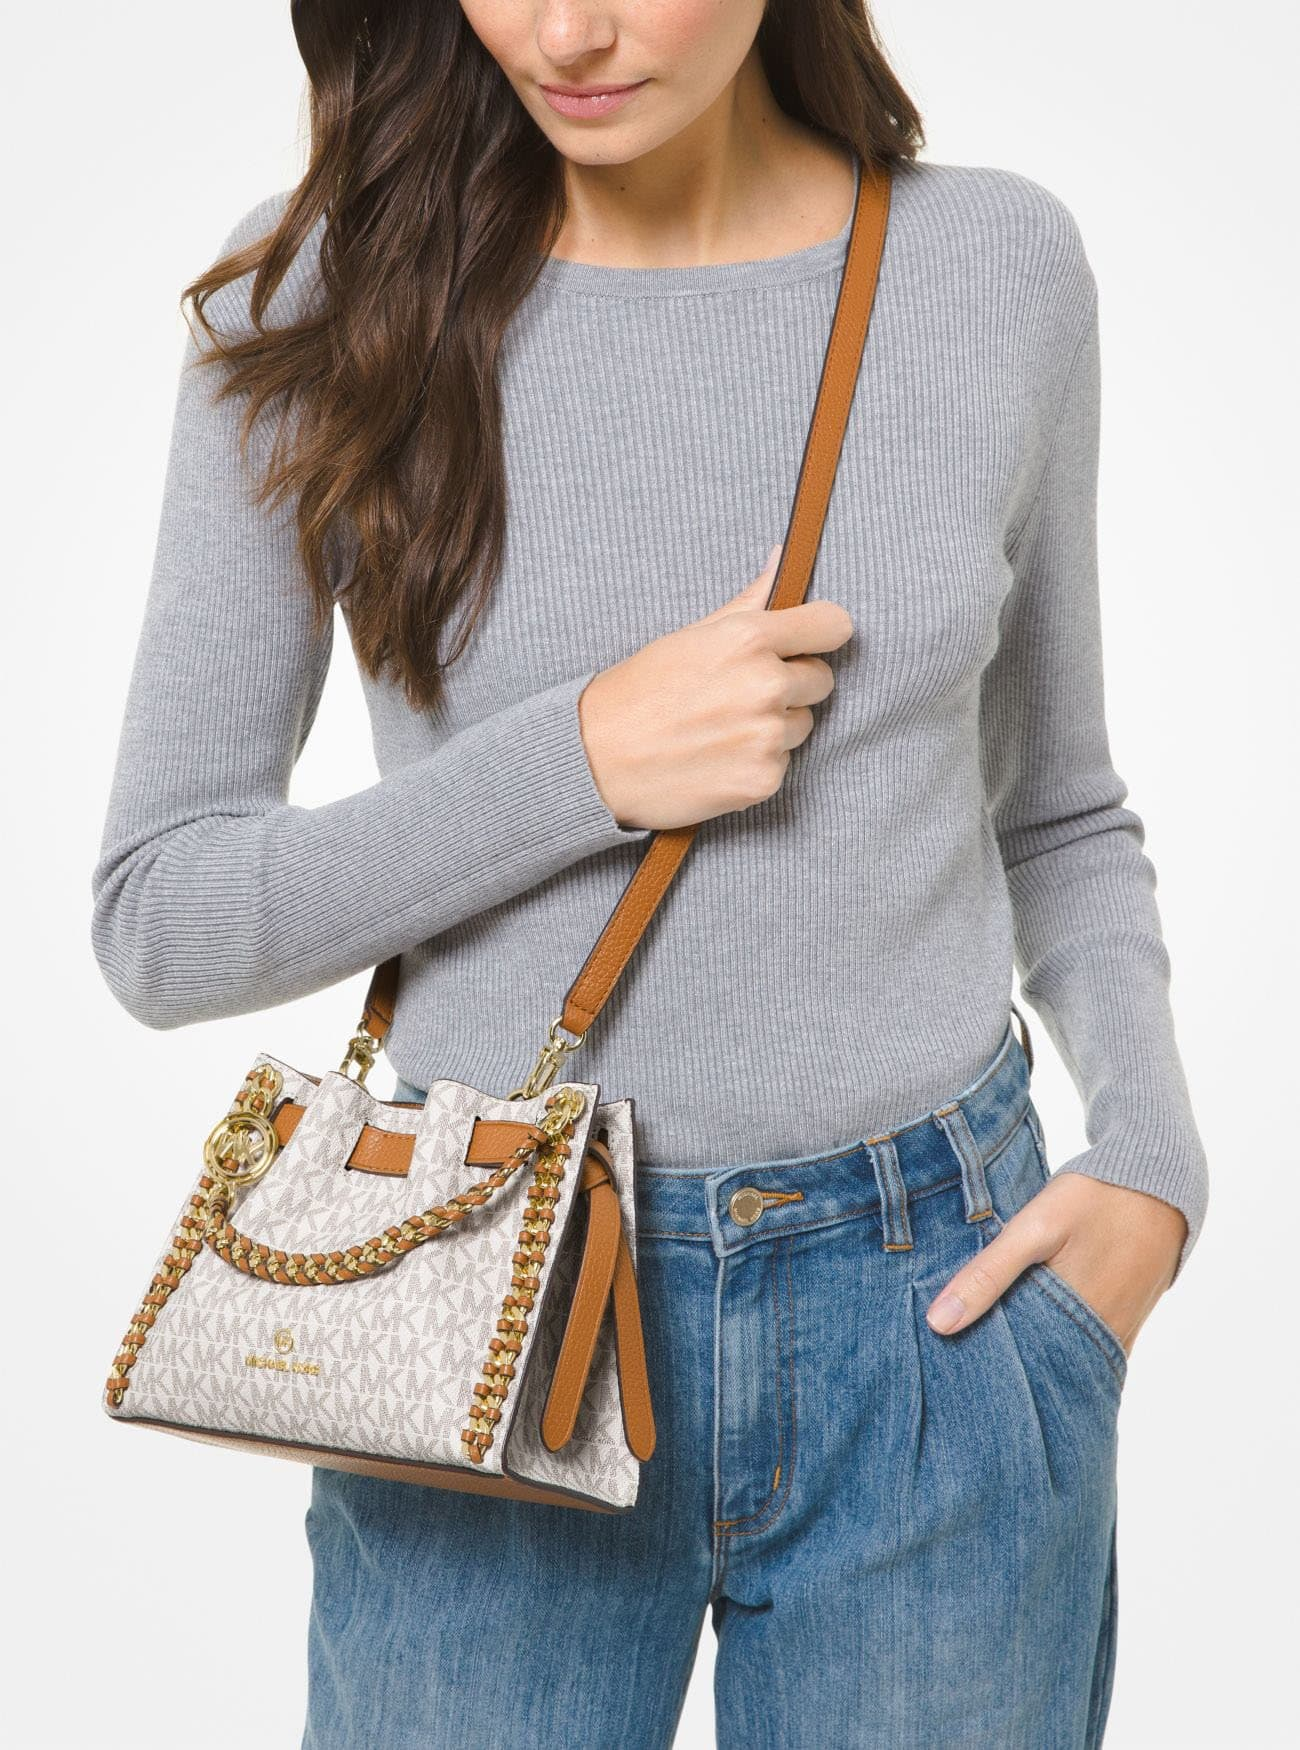 Carry it using the braided leather-and-chain top handles or the adjustable crossbody strap